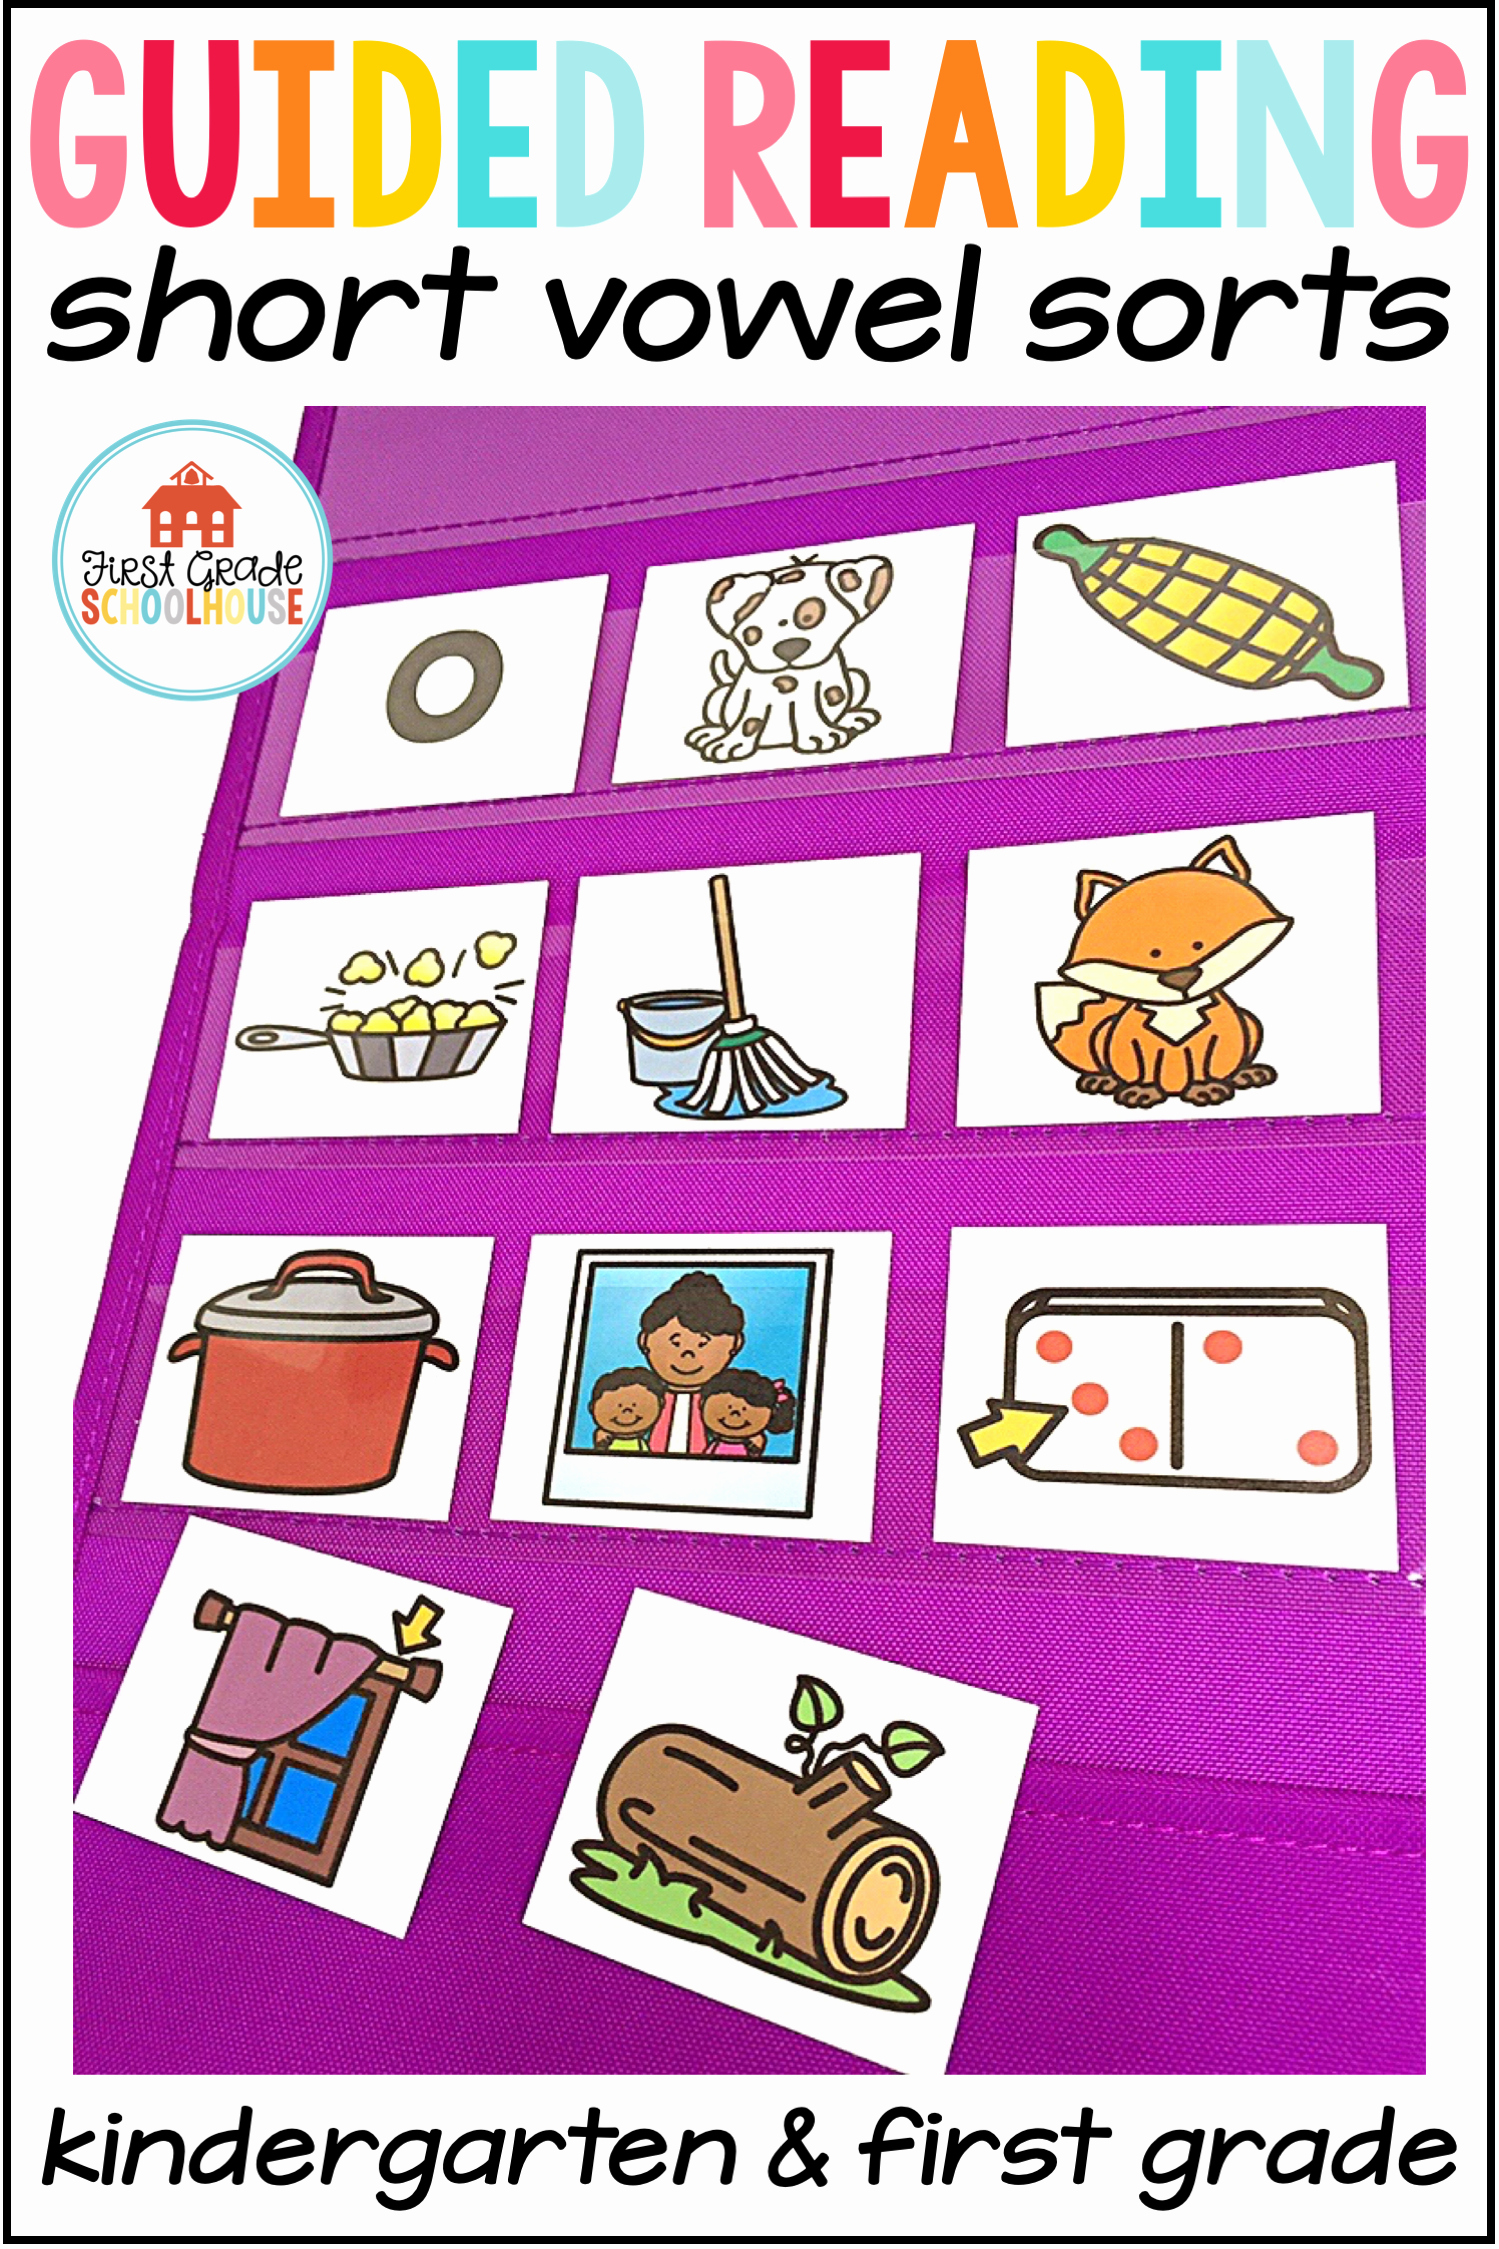 Medial sounds Worksheets First Grade Elegant Guided Reading sound sorts Medial Short Vowel sounds